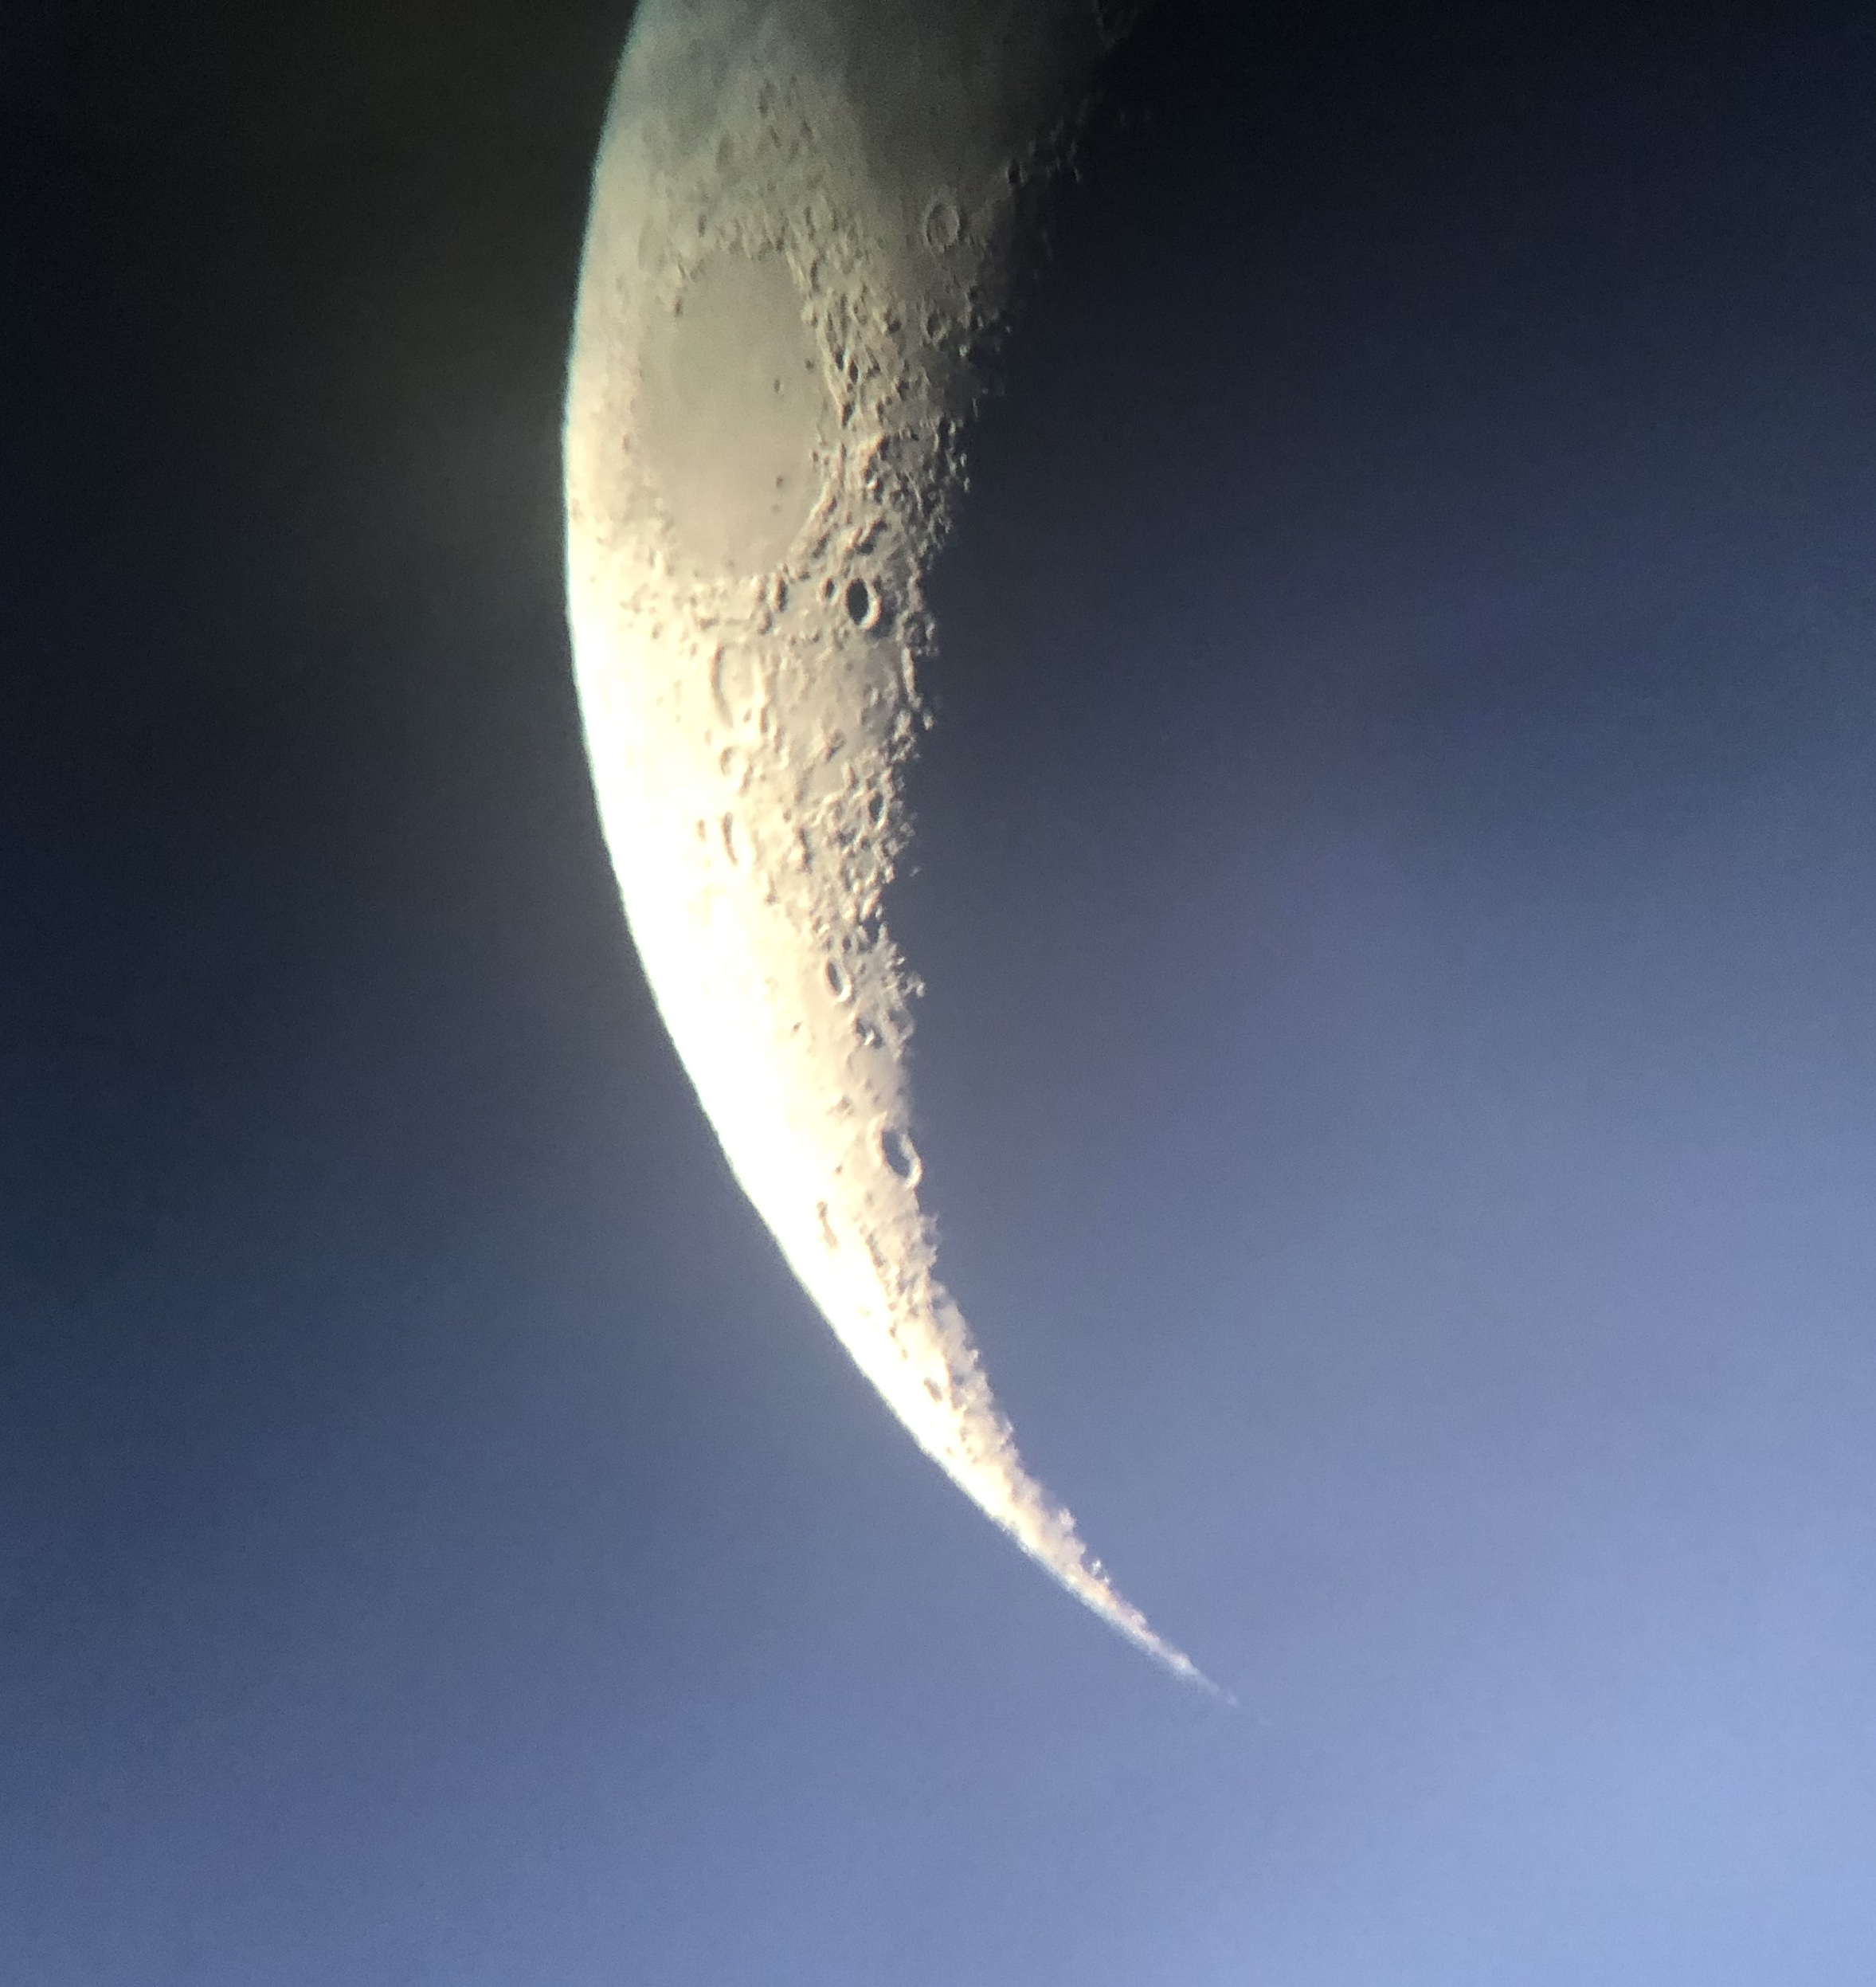 Moon View from Skywatch with NH Astronomical Society